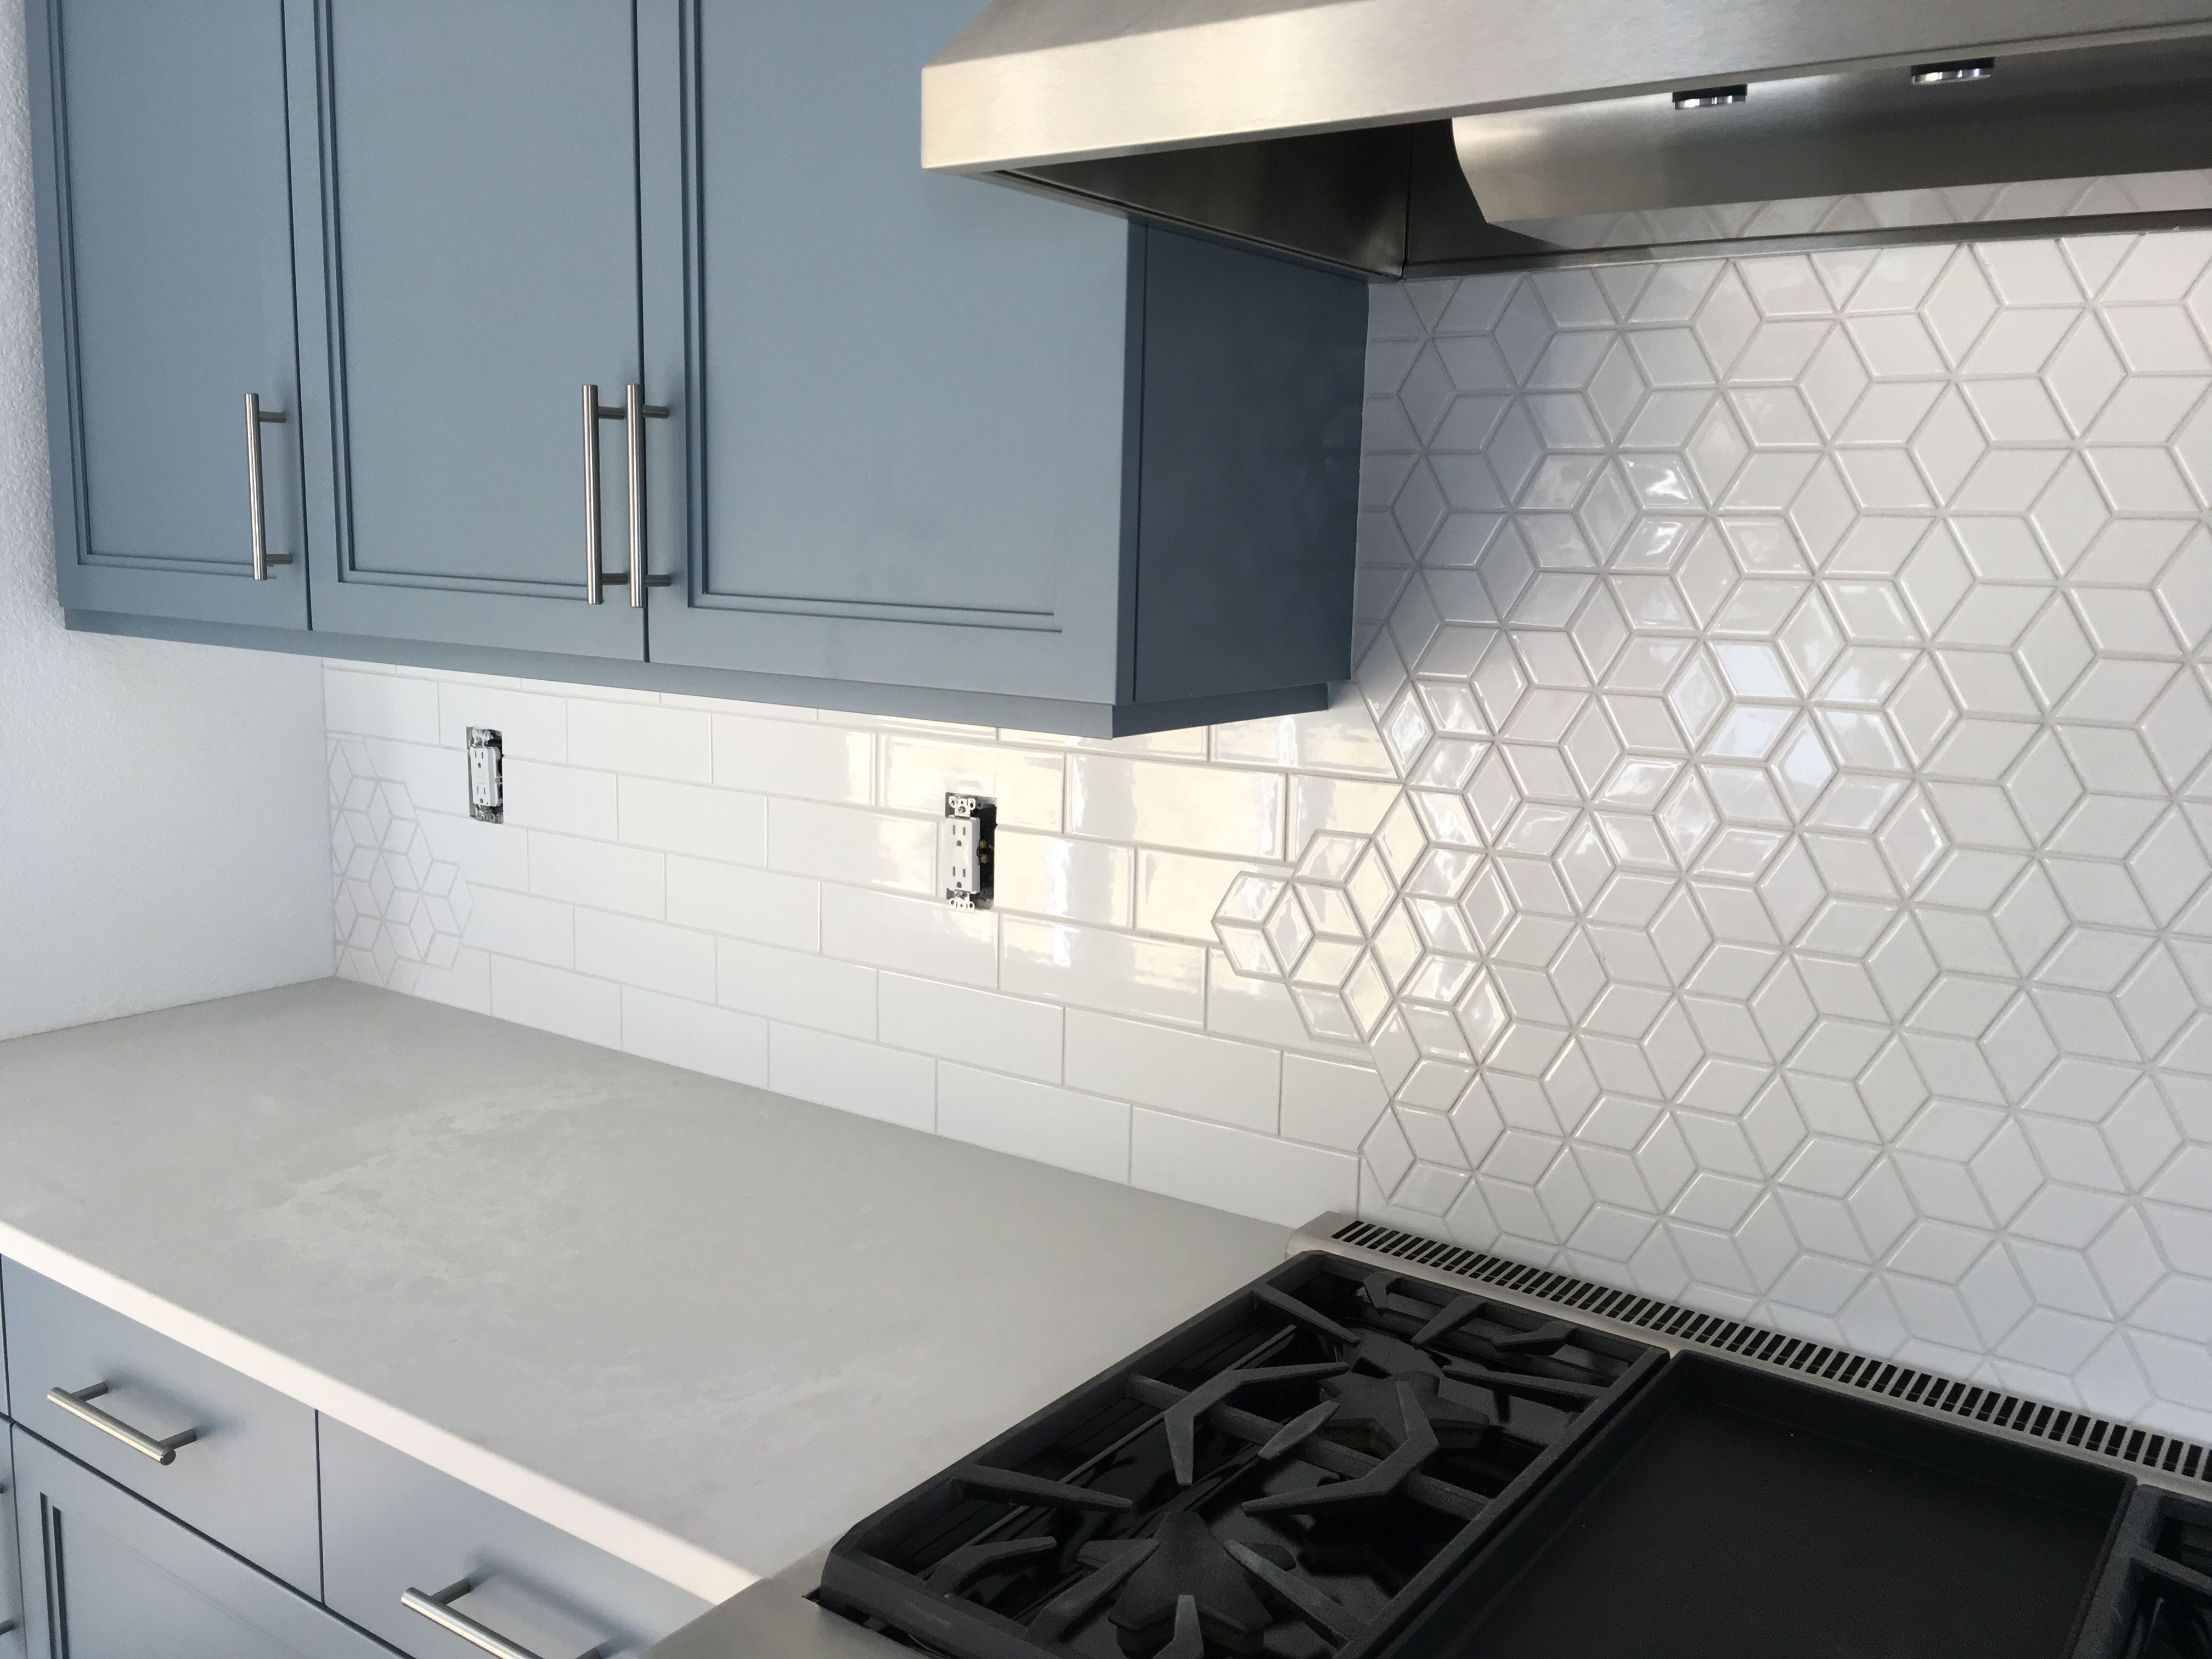 Kitchen Backsplash With A Combination Of The Diamond Pattern Mosaic And 3x9 Subway Tile From Cl Patterned Kitchen Tiles Kitchen Backsplash Diamond Tile Pattern